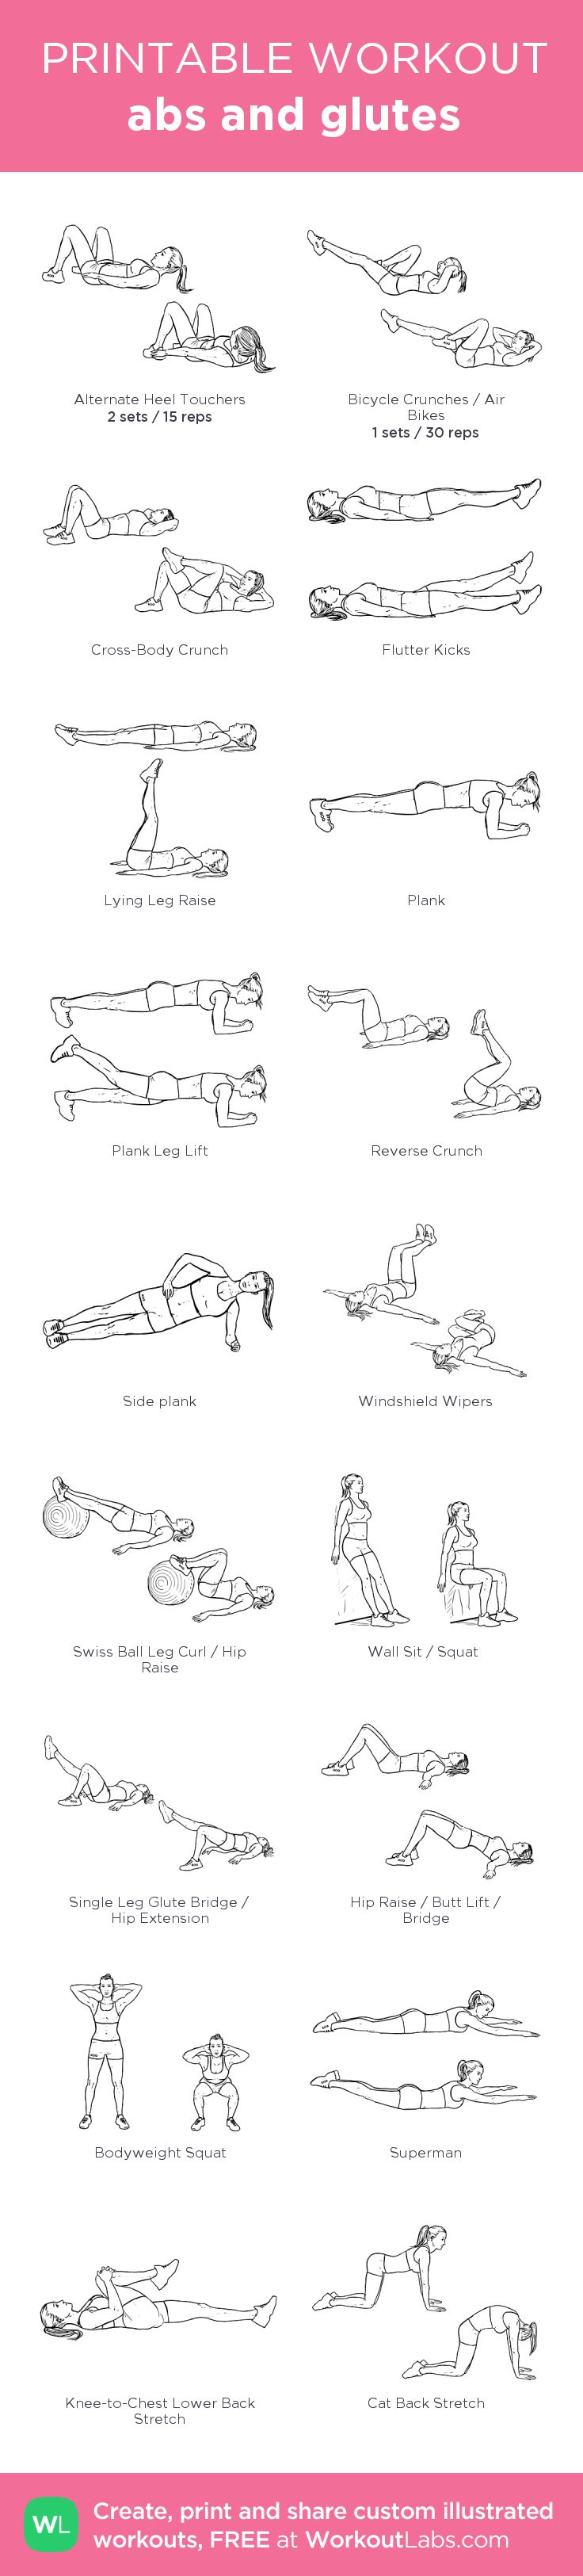 abs and glutes:my custom printable workout by @WorkoutLabs #workoutlabs #customworkout